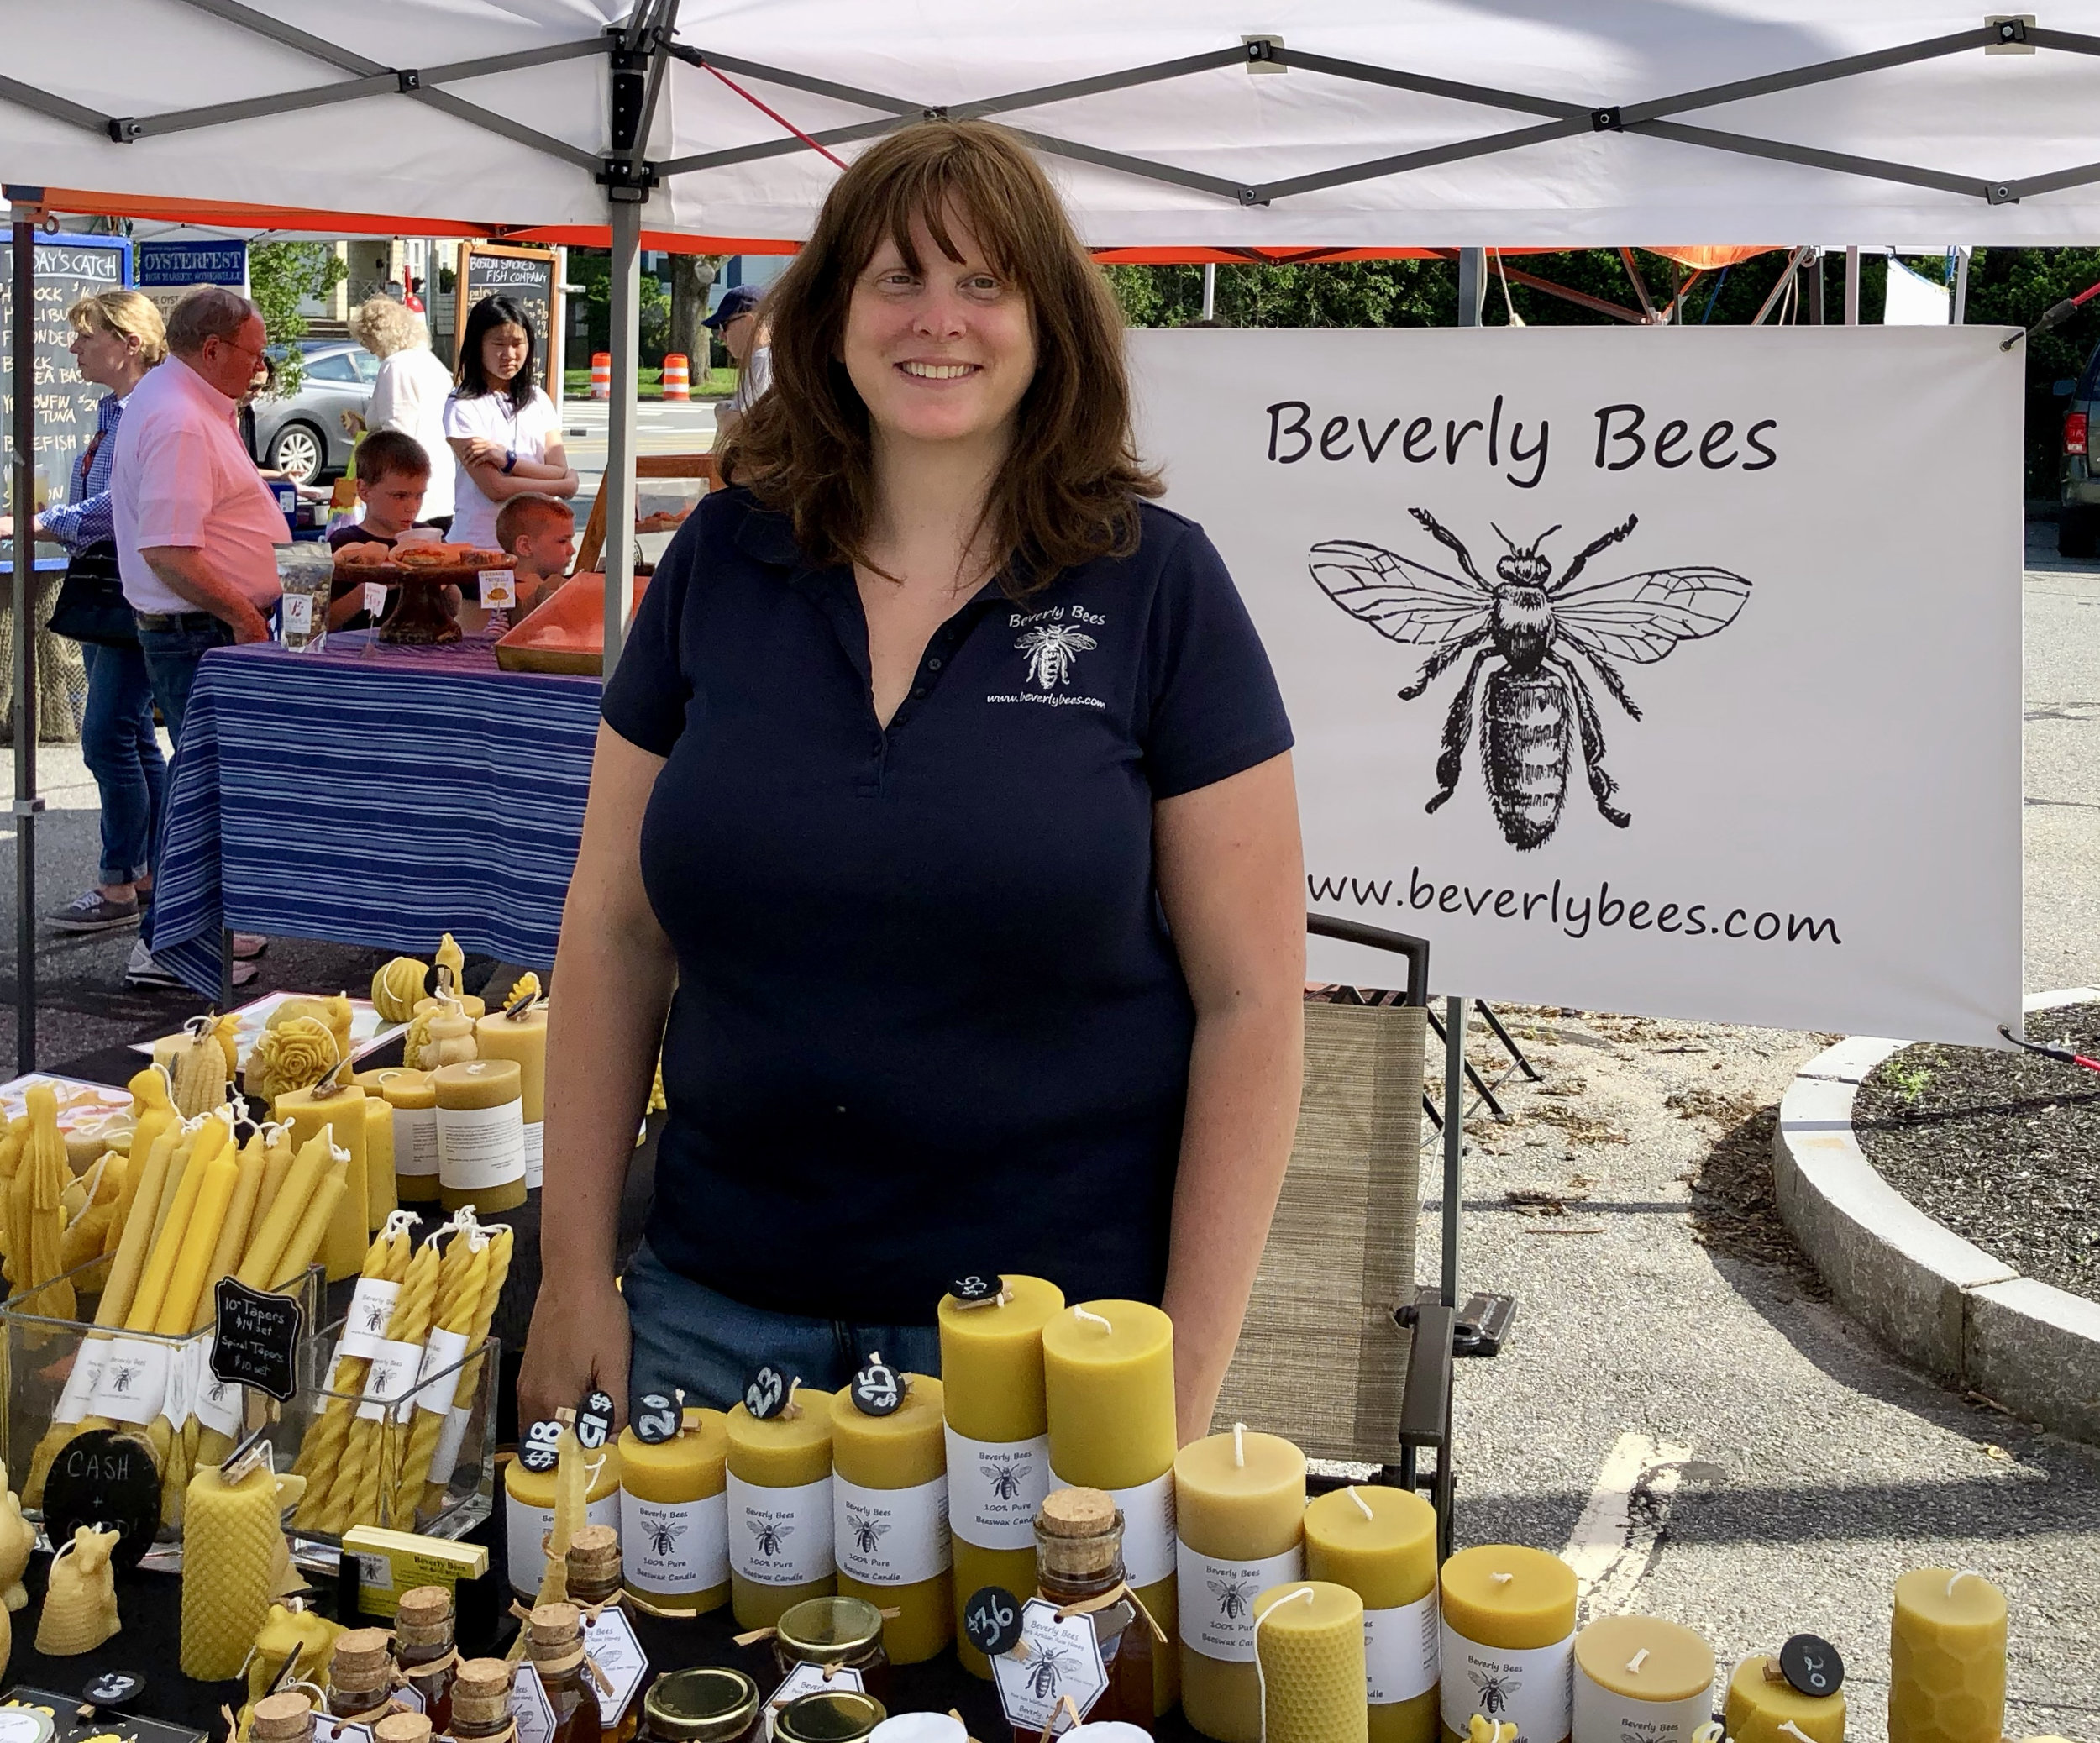 Honey and beeswax products from Beverly Bees